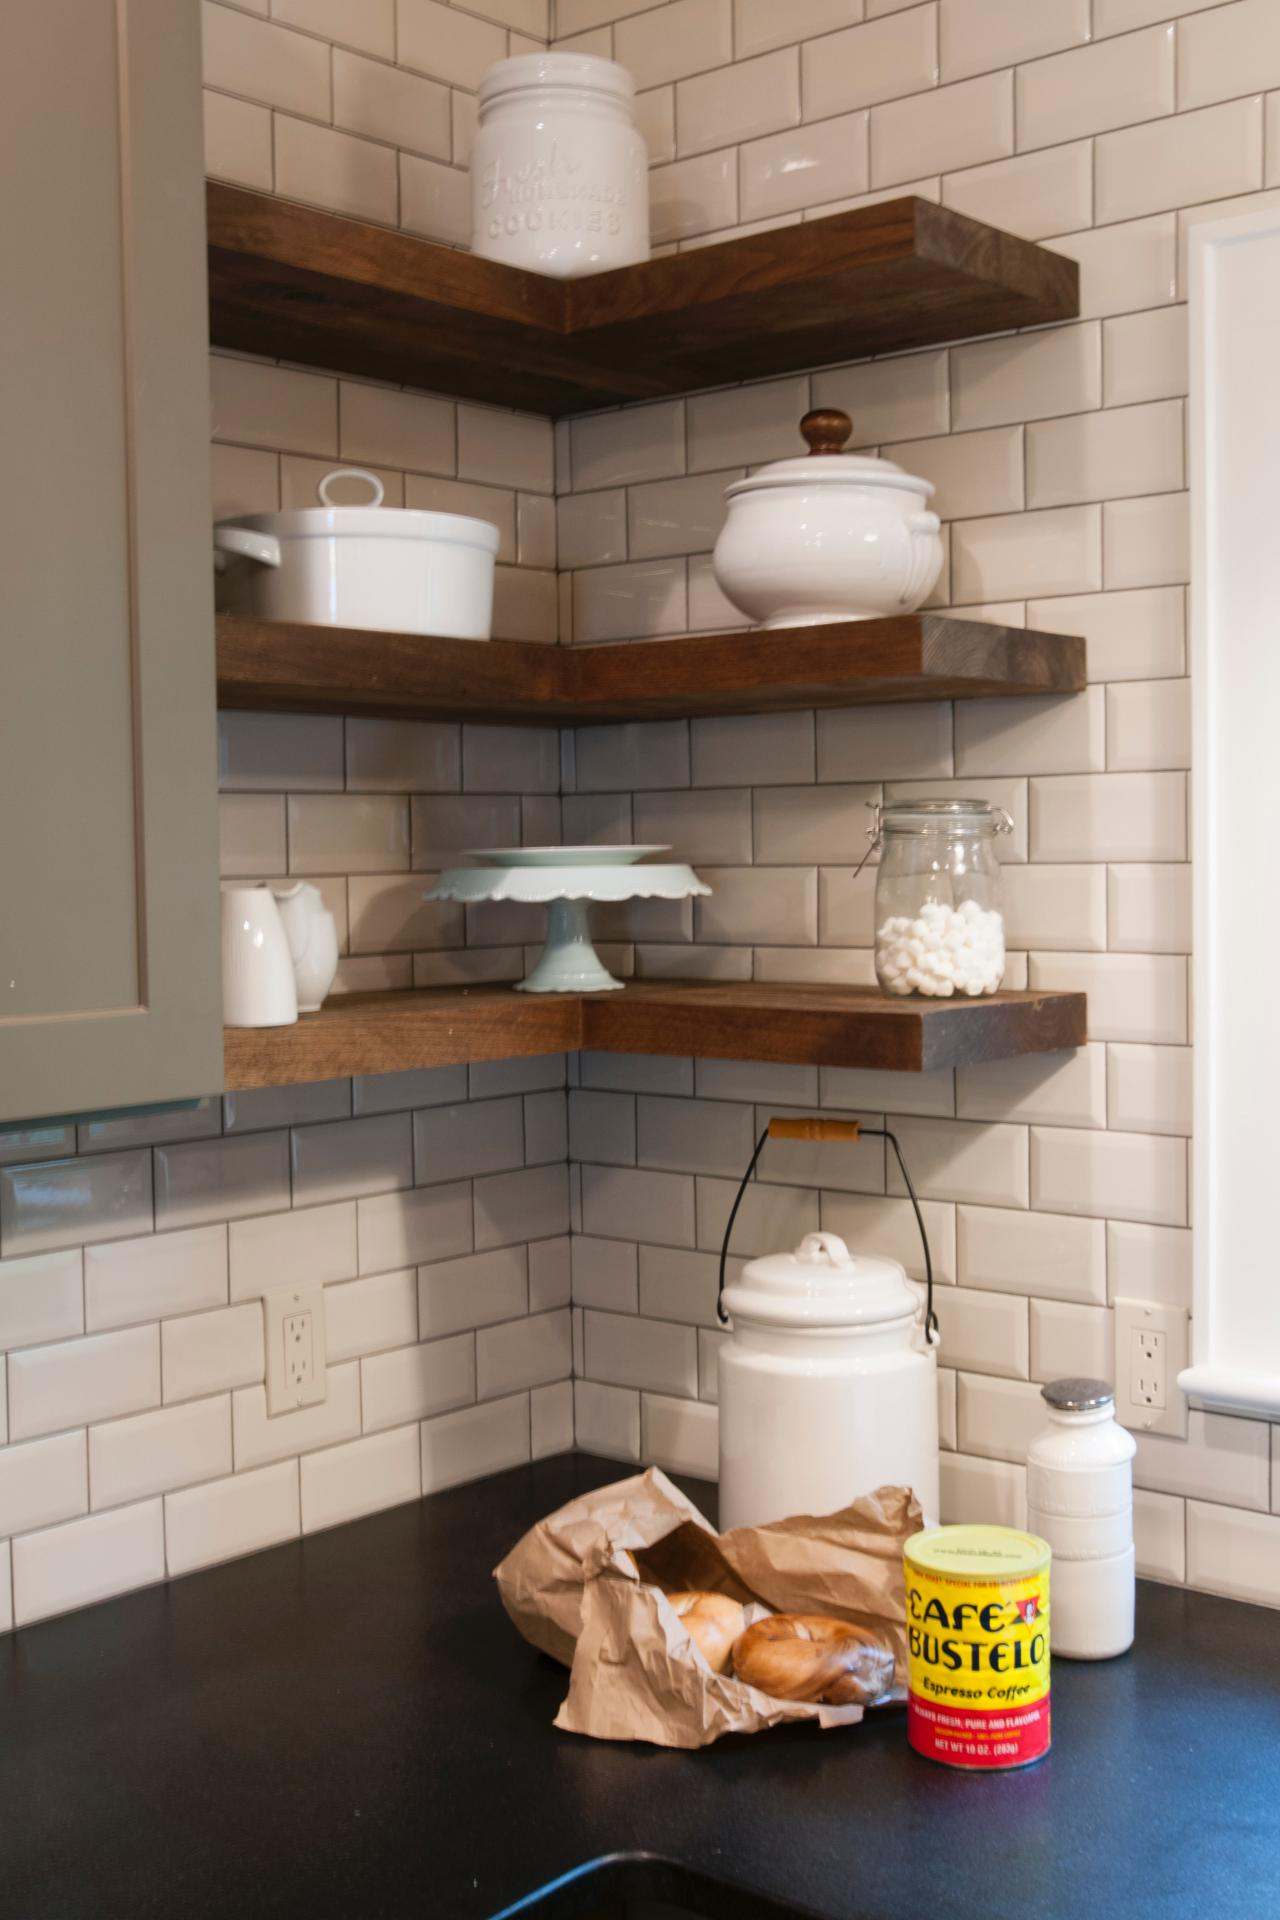 Liven the Kitchen: Floating Kitchen Interior Shelves